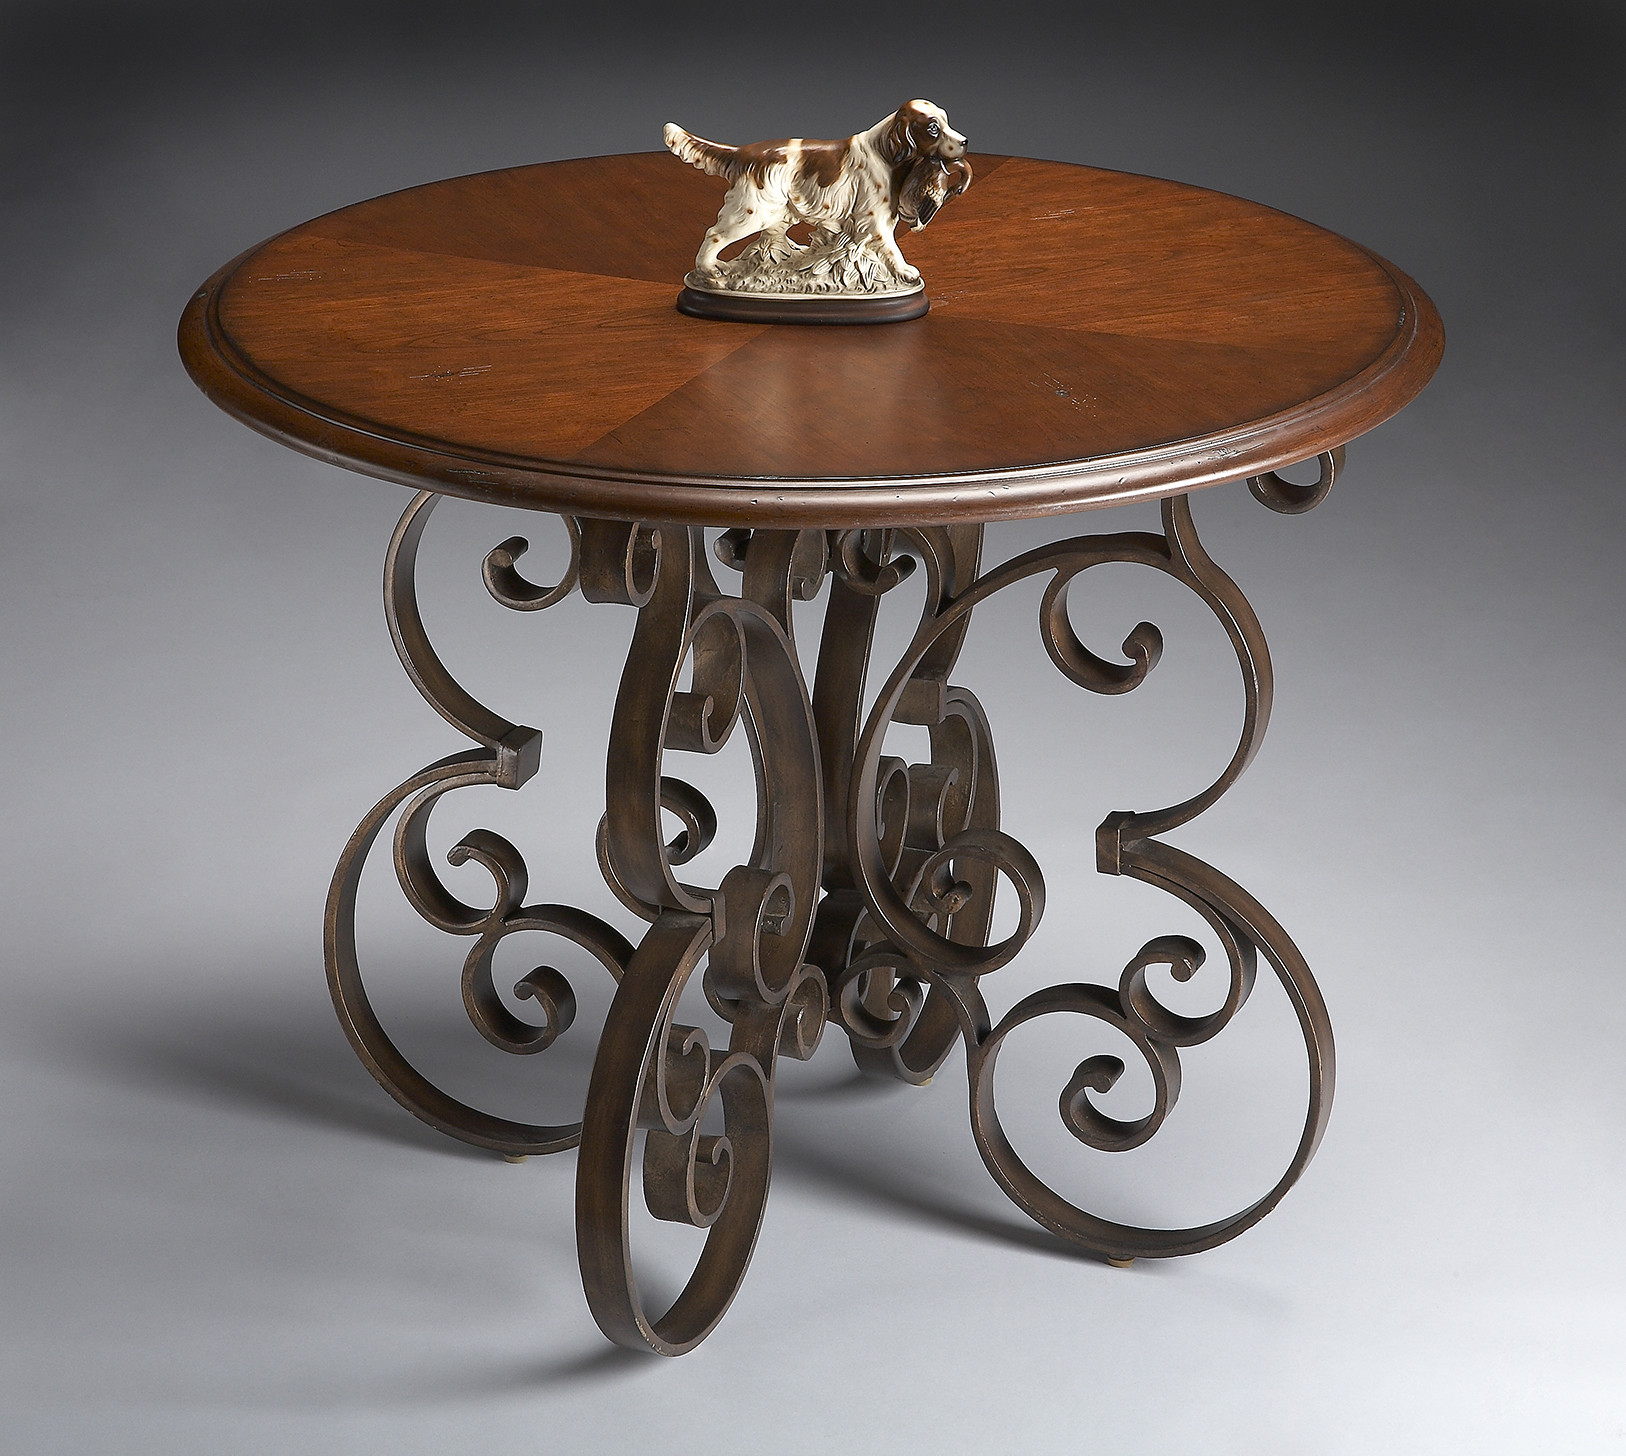 Best ideas about Metal Entryway Table . Save or Pin Furniture White Entryway Design Idea Filled Round Now.